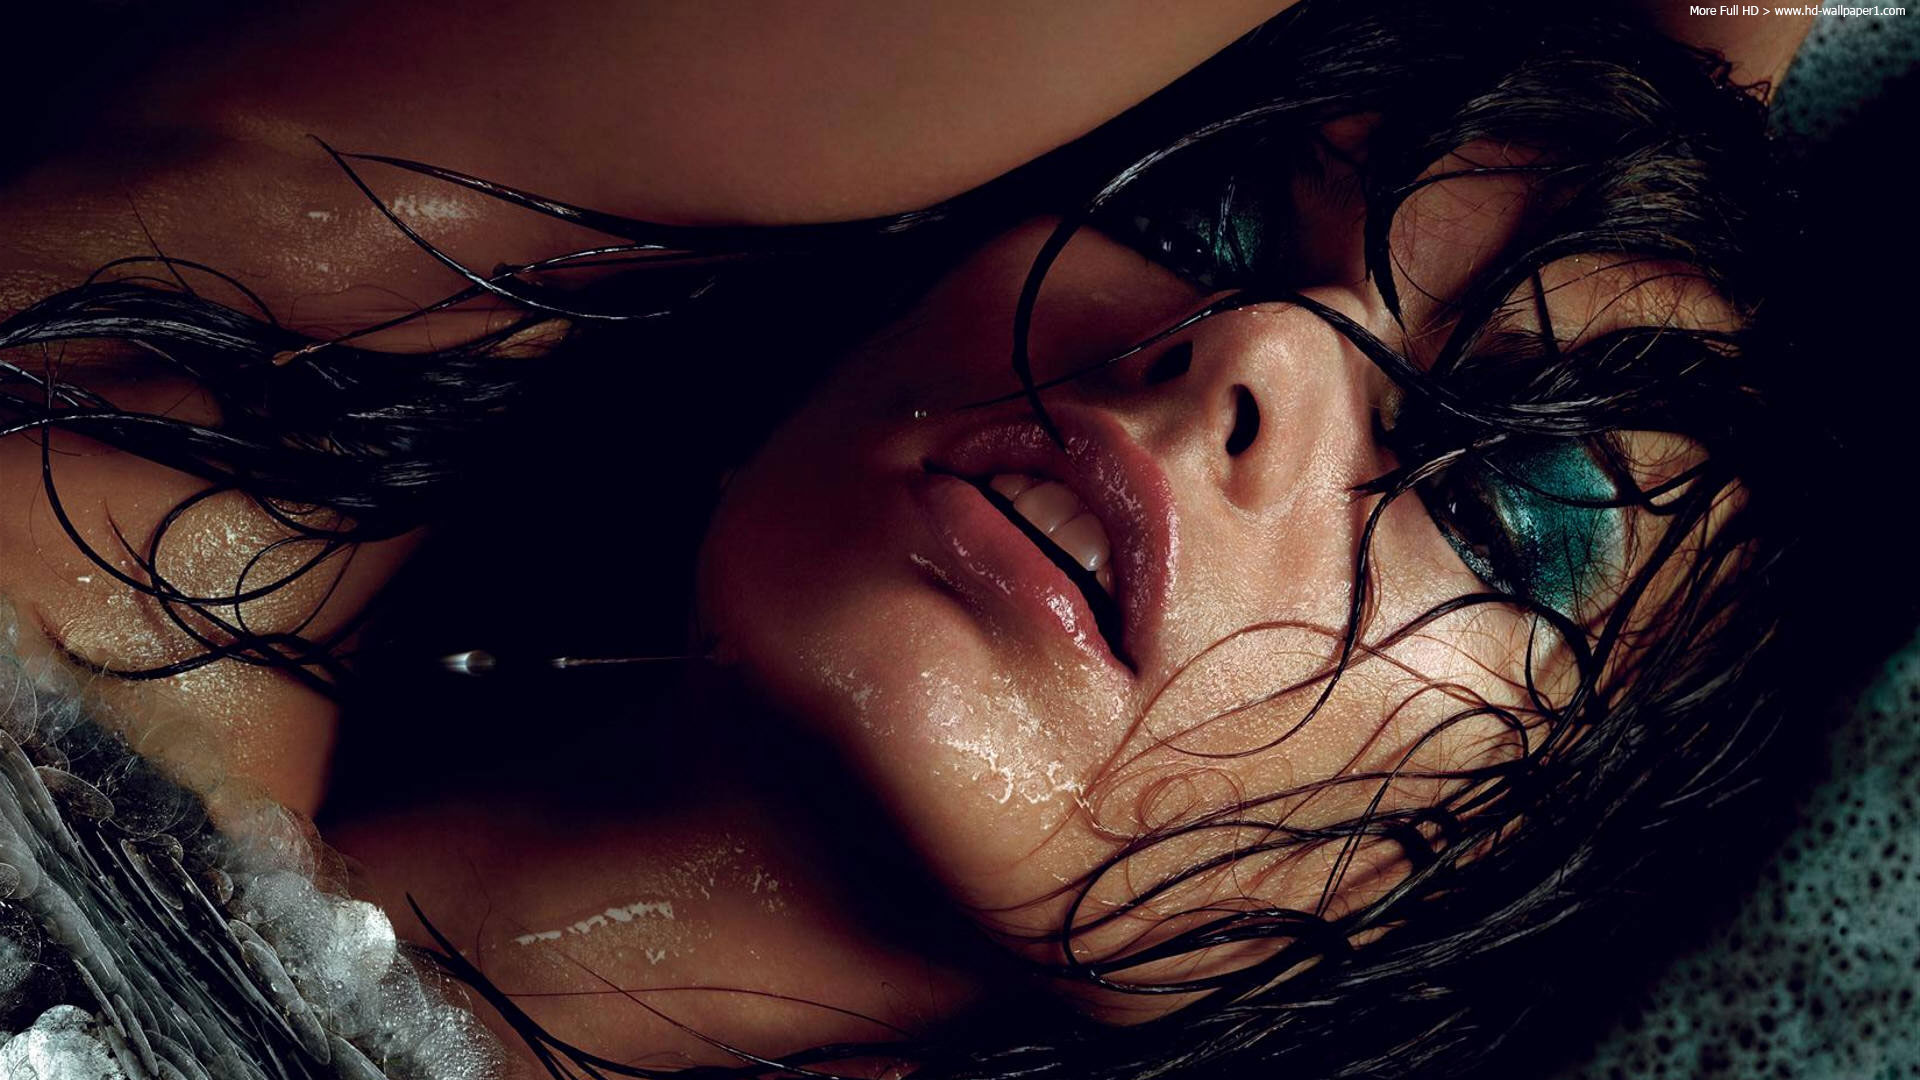 milla-jovovich-makeup-face-on-the-water-full-hd.jpg